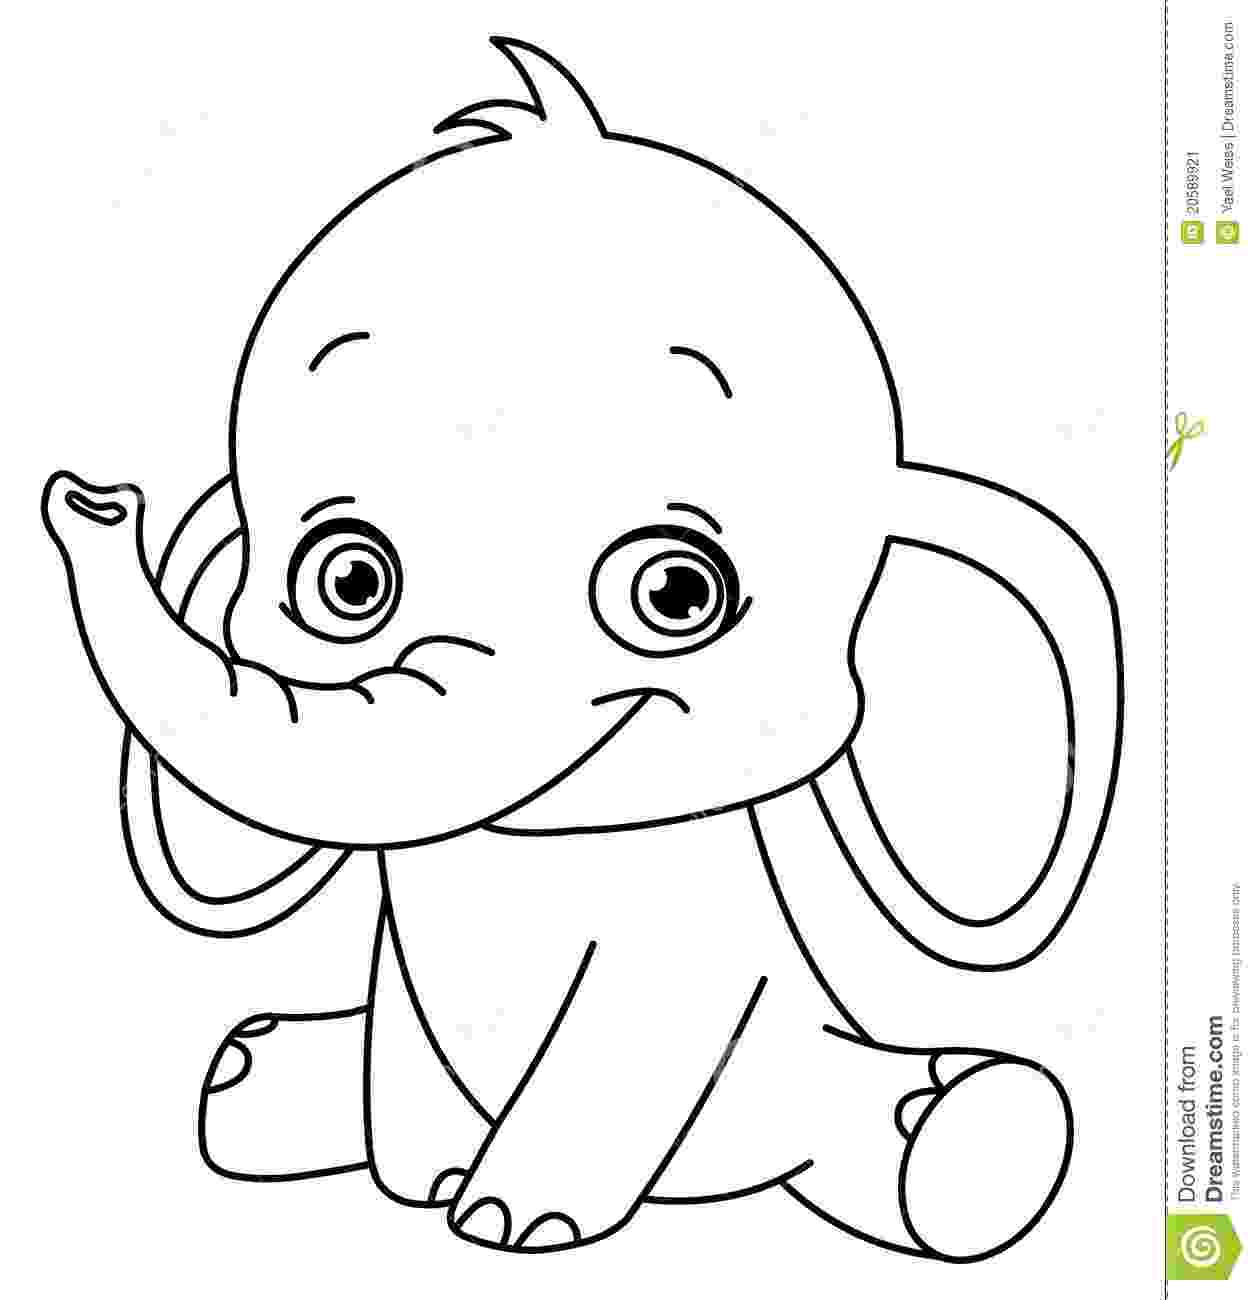 elephant color sheet baby elephant coloring pages getcoloringpagescom sheet elephant color